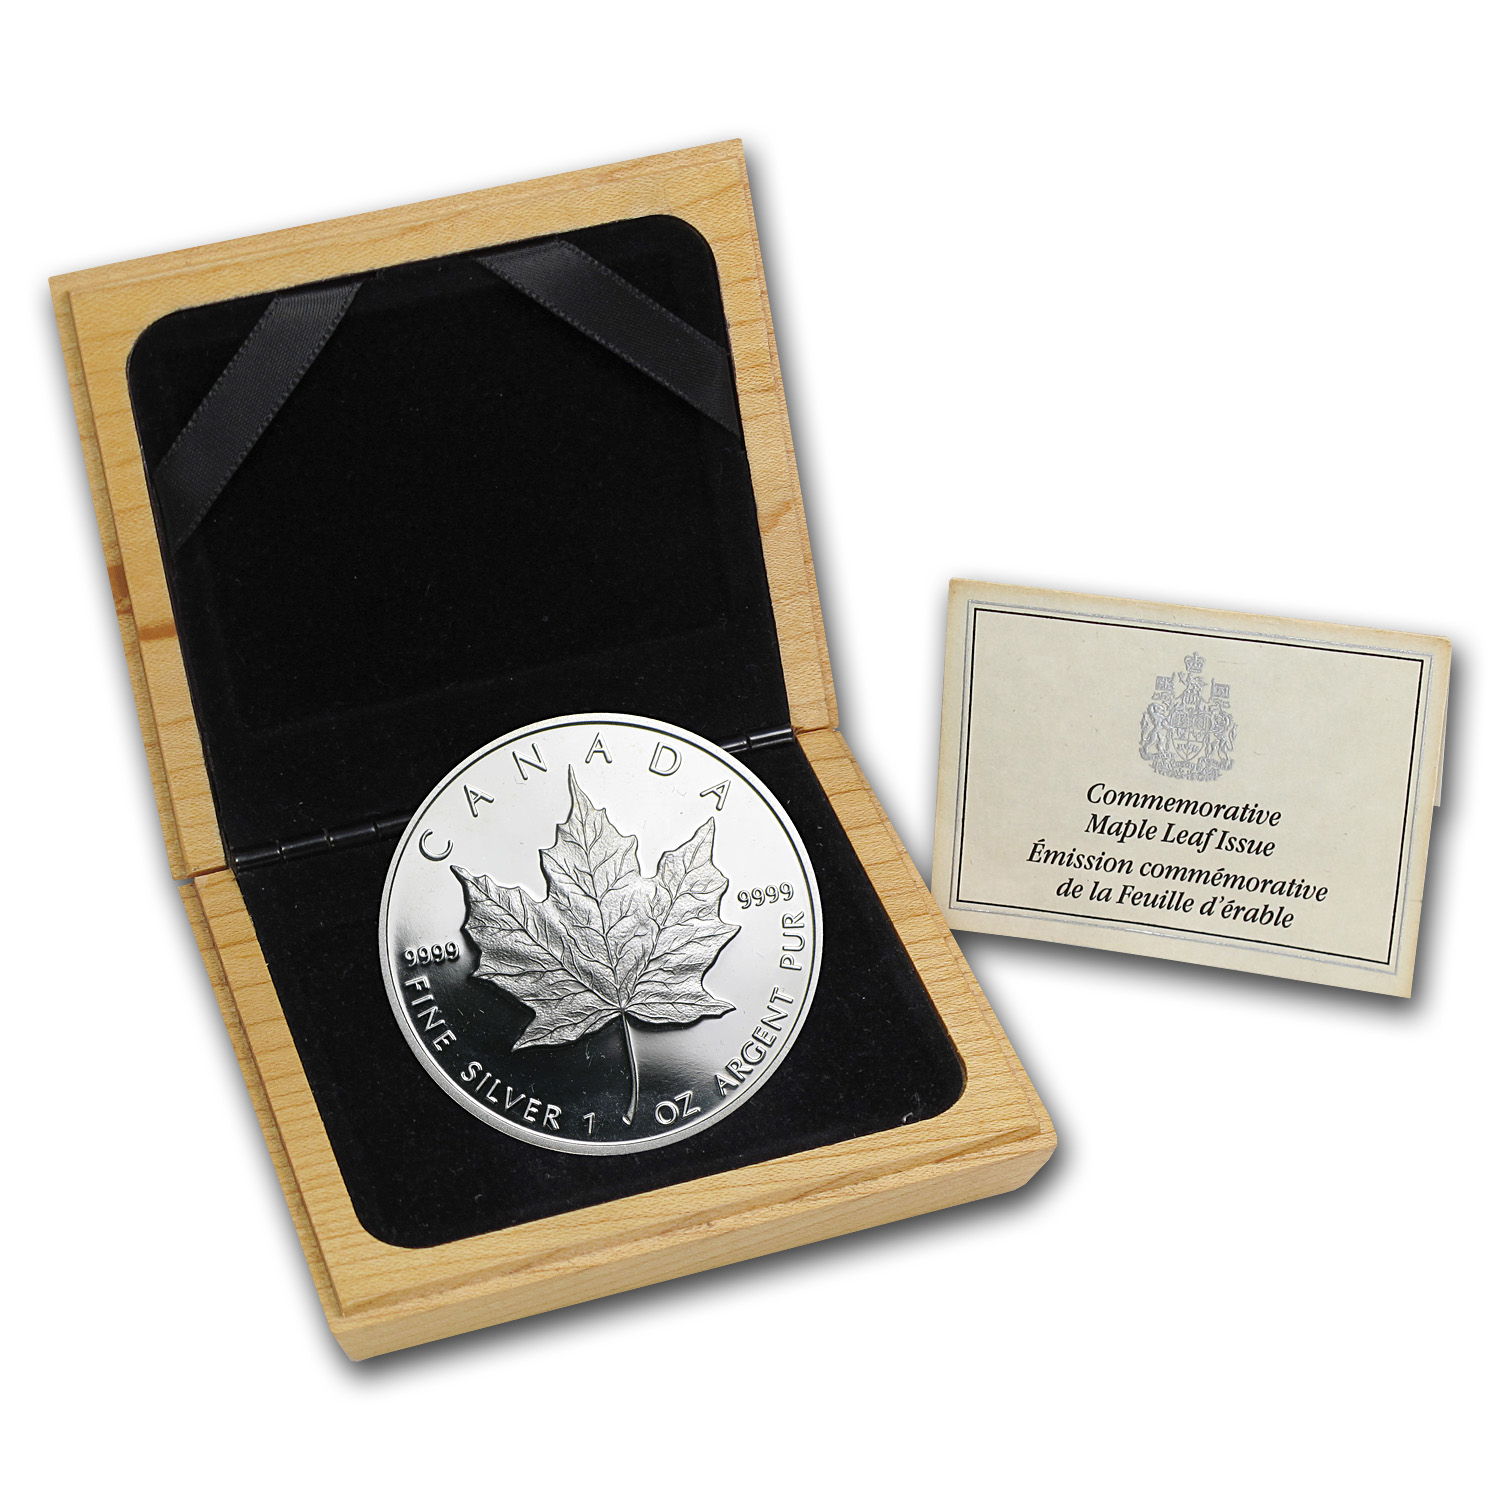 1989 1 oz Proof Silver Canadian Maple Leaf (Abrasions)